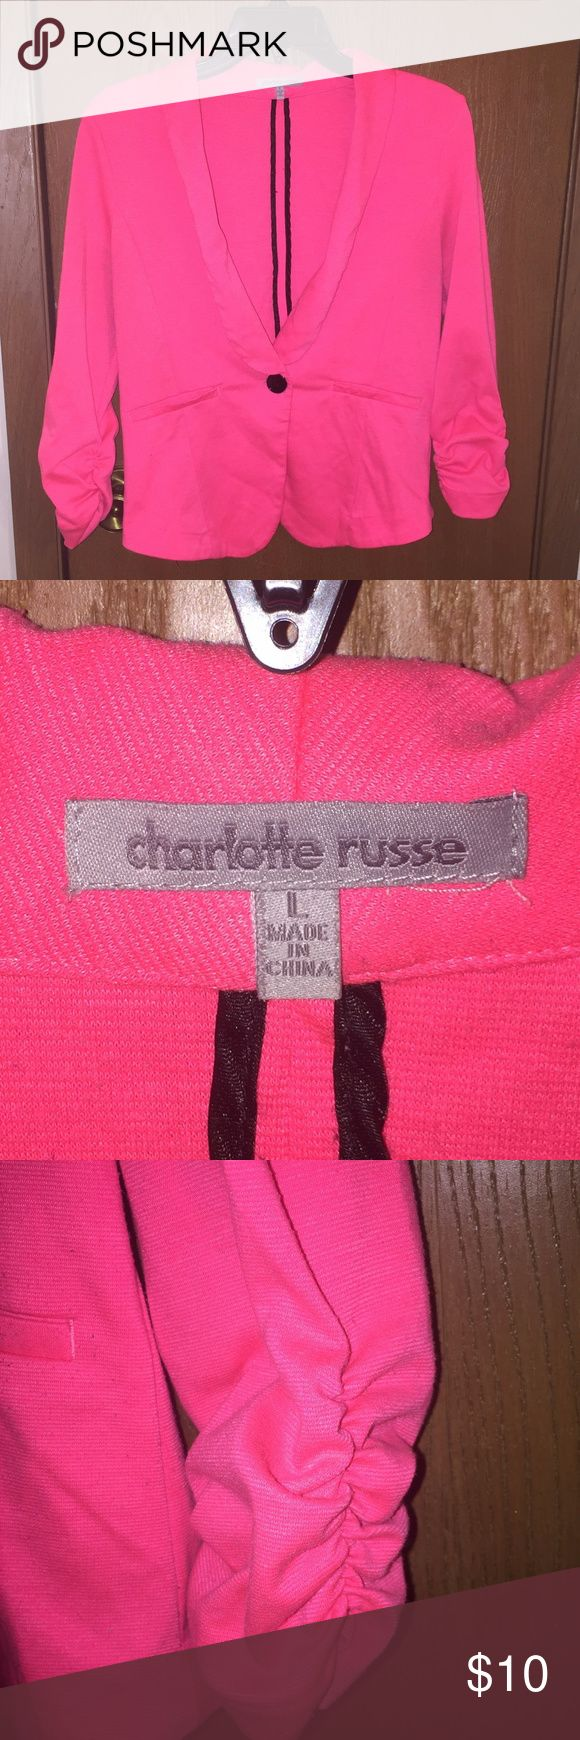 Charlotte Russe hot pink blazer Charlotte Russe hot pink blazer. Size large. It's very soft & flexible with cinched sleeves and a single black button. Charlotte Russe Jackets & Coats Blazers